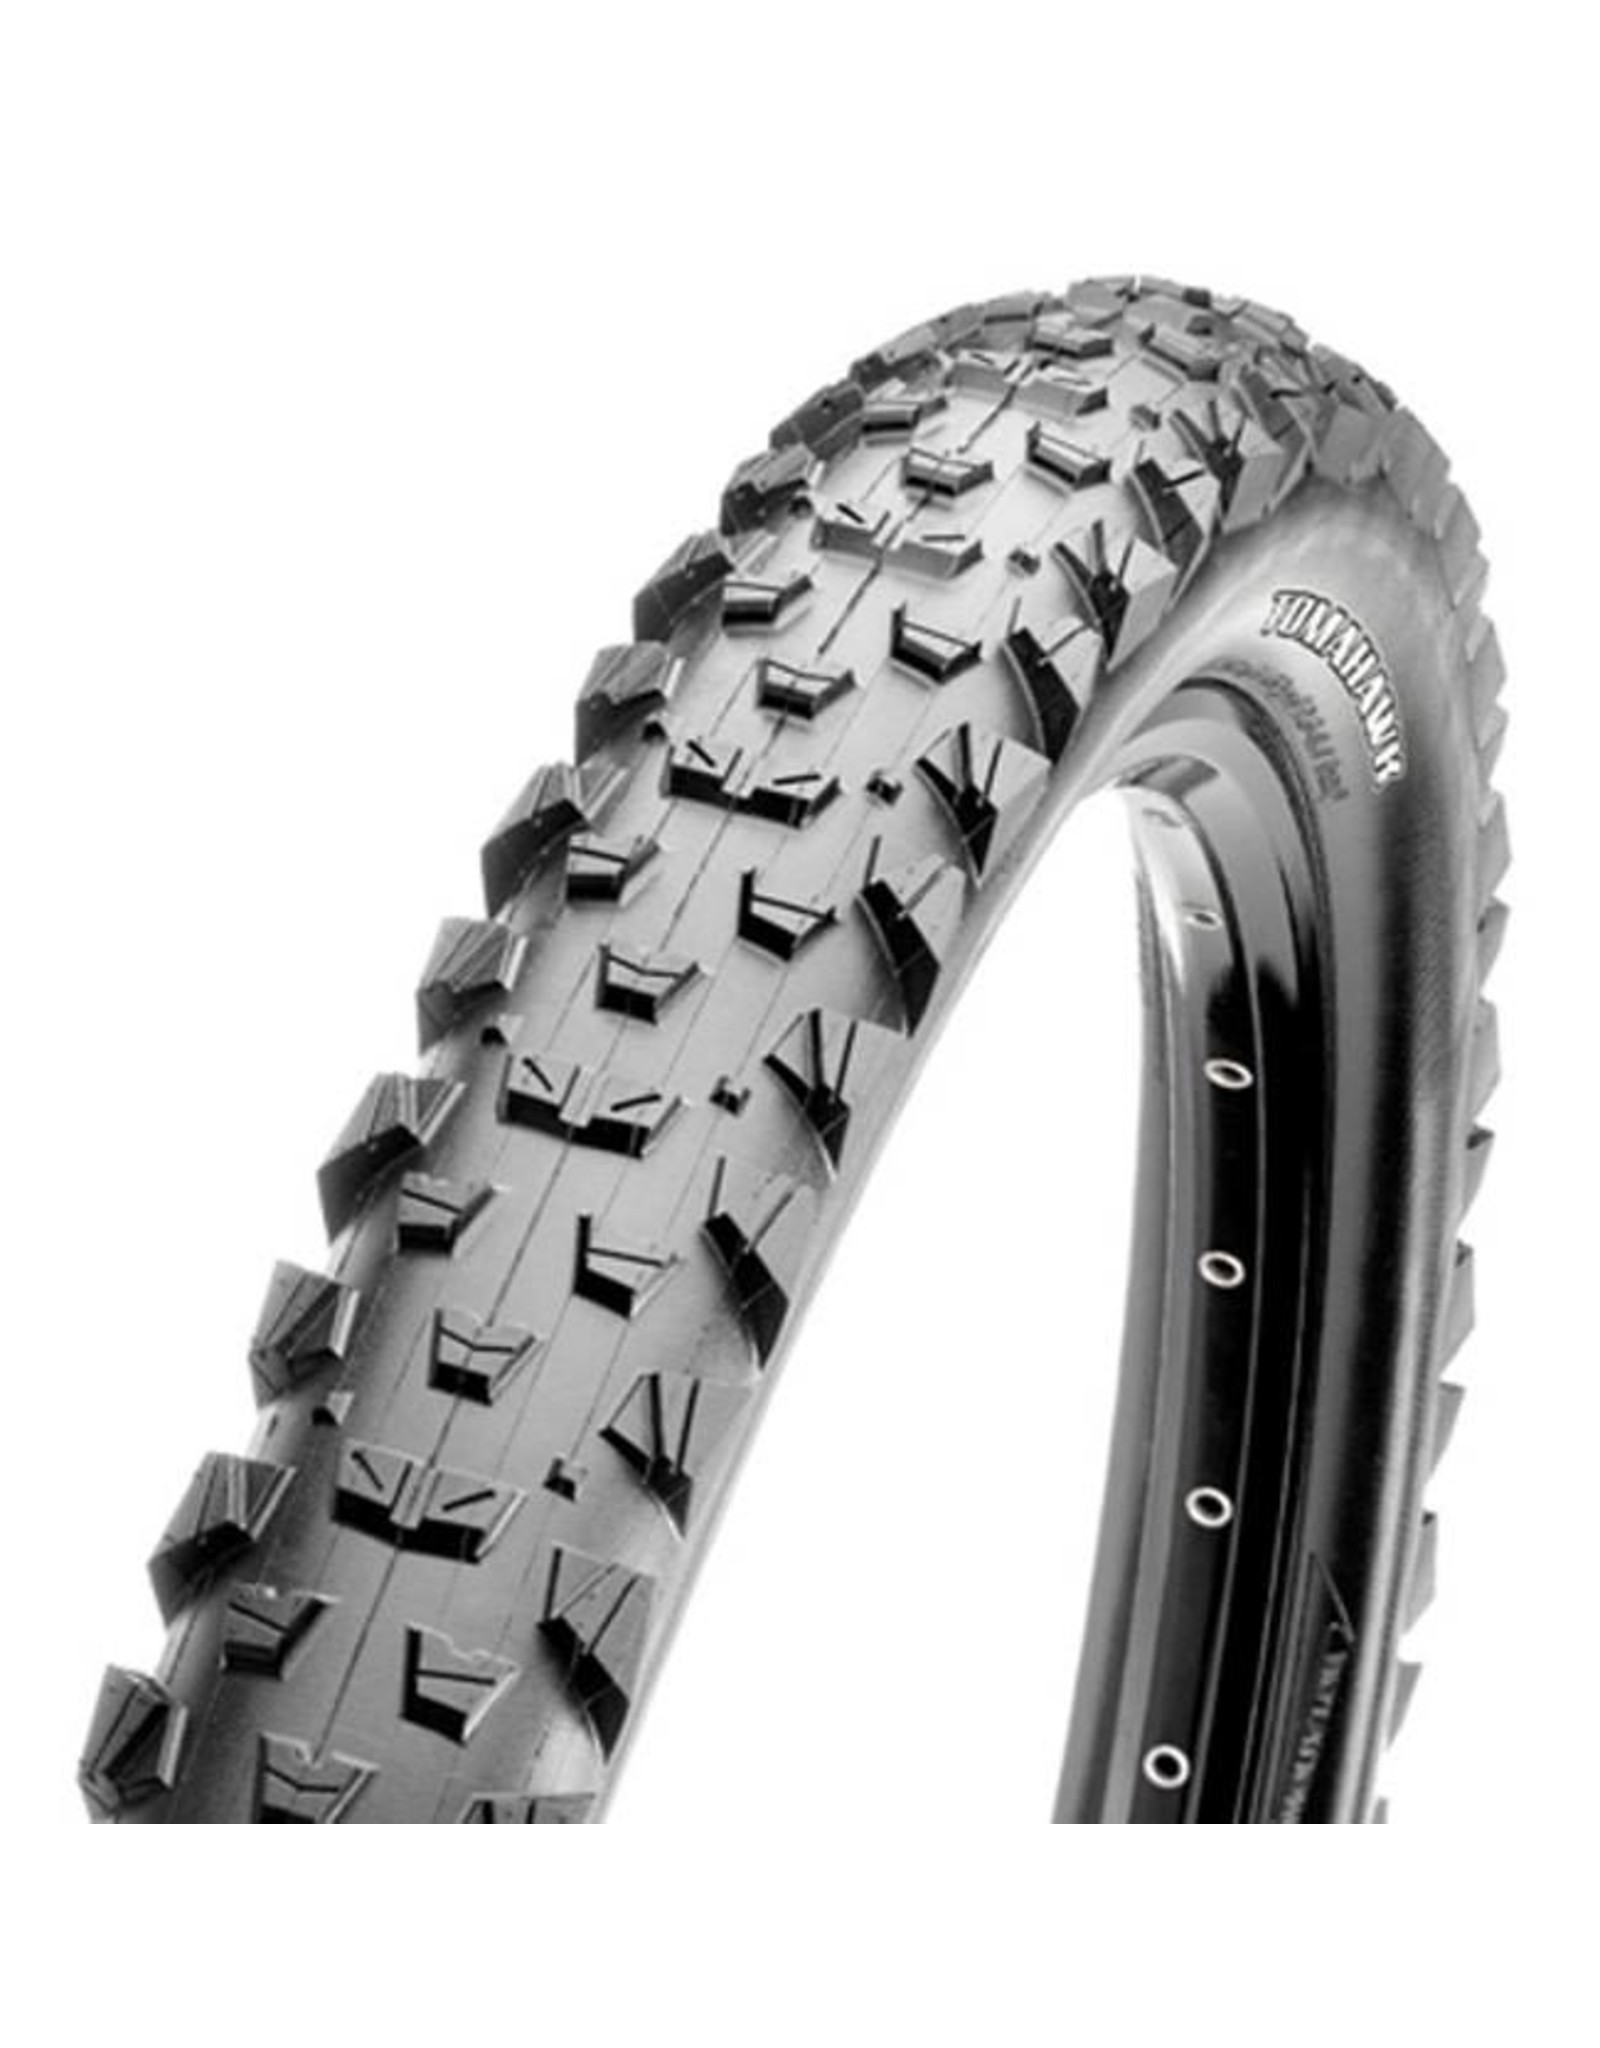 "Maxxis Maxxis Tomahawk Tire: 29 x 2.30"", Folding, 60tpi, 3C, EXO, Tubeless Ready, Black"